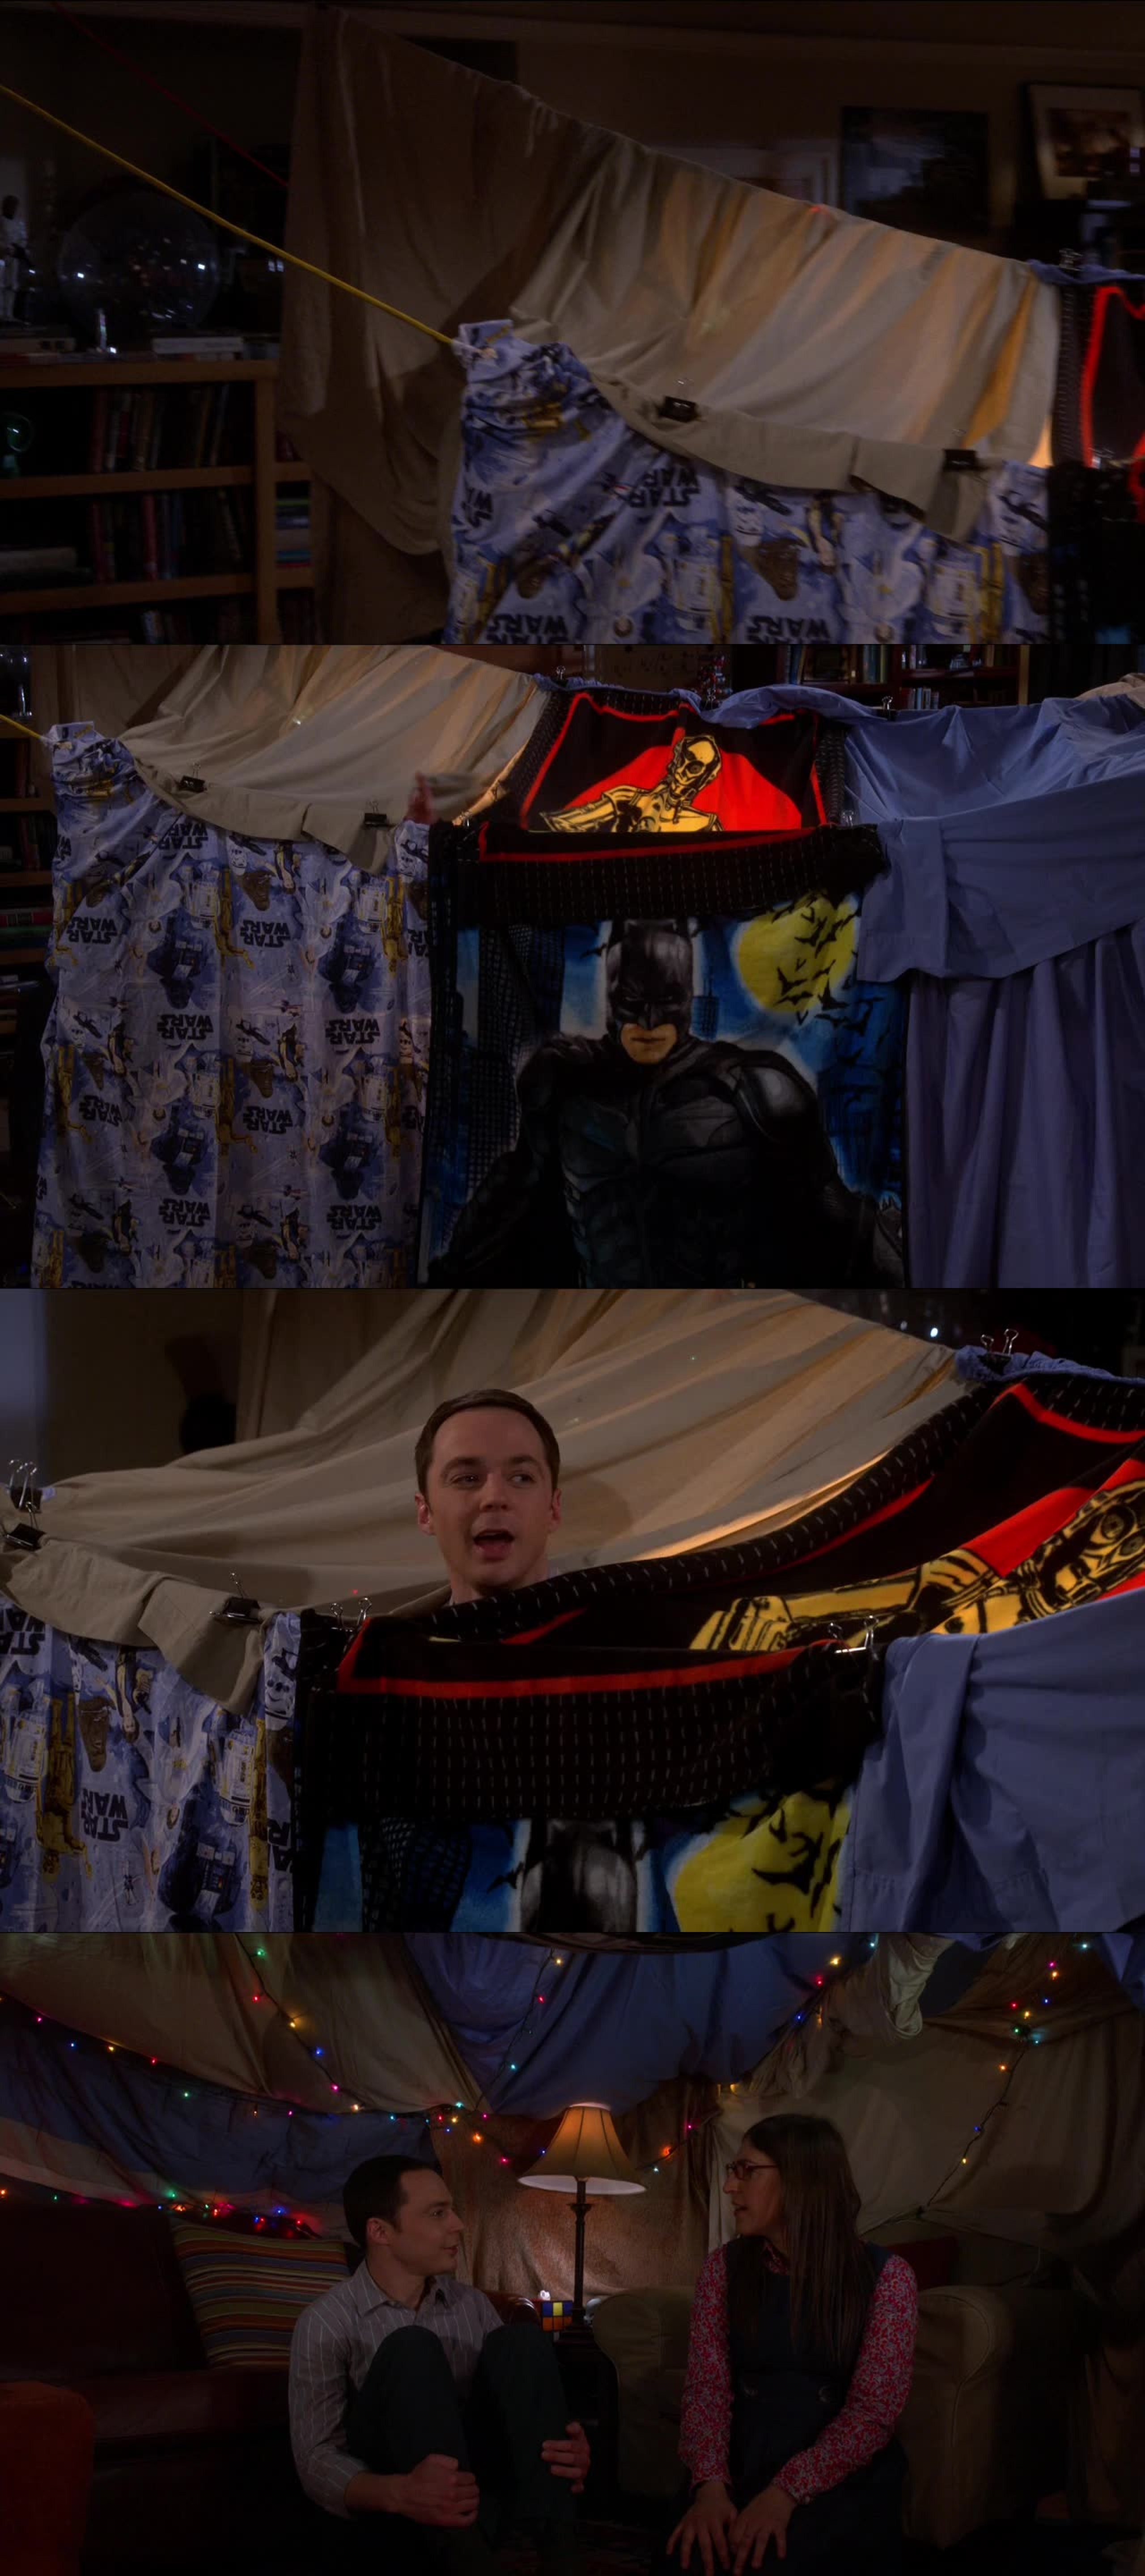 I want a blanket fort!!